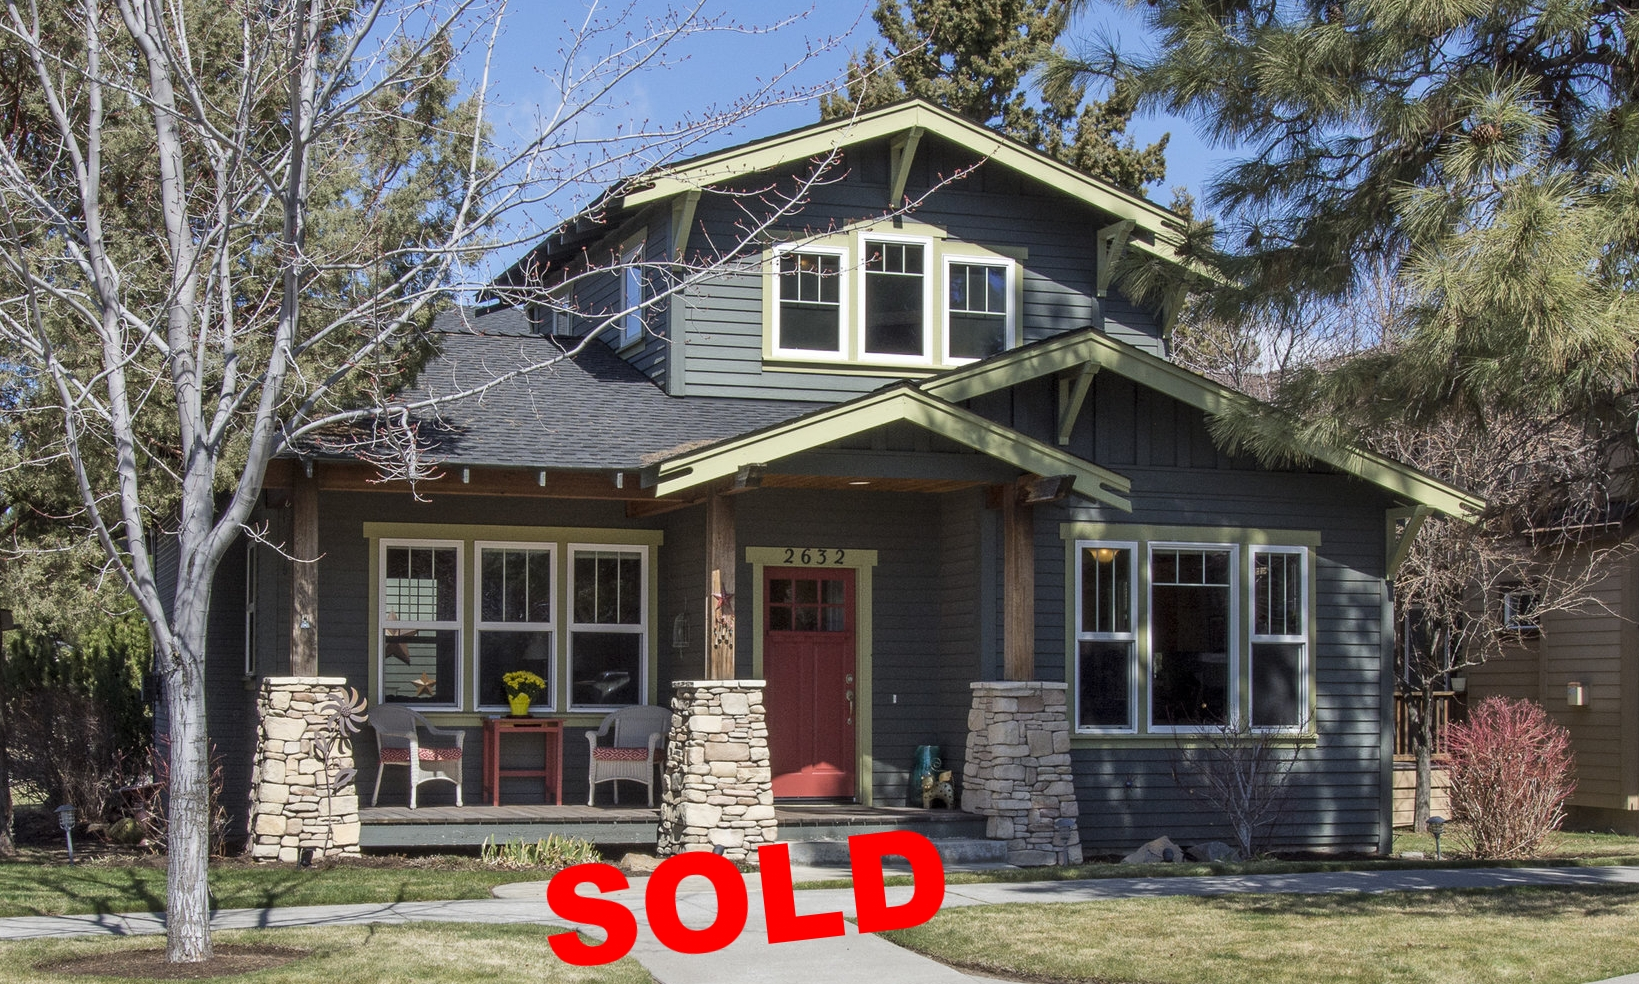 Sold!2632 NW Ordway Ave. - $572,000This beautiful North West Craftsman went pending in 7 days, closed in less than 45 days.